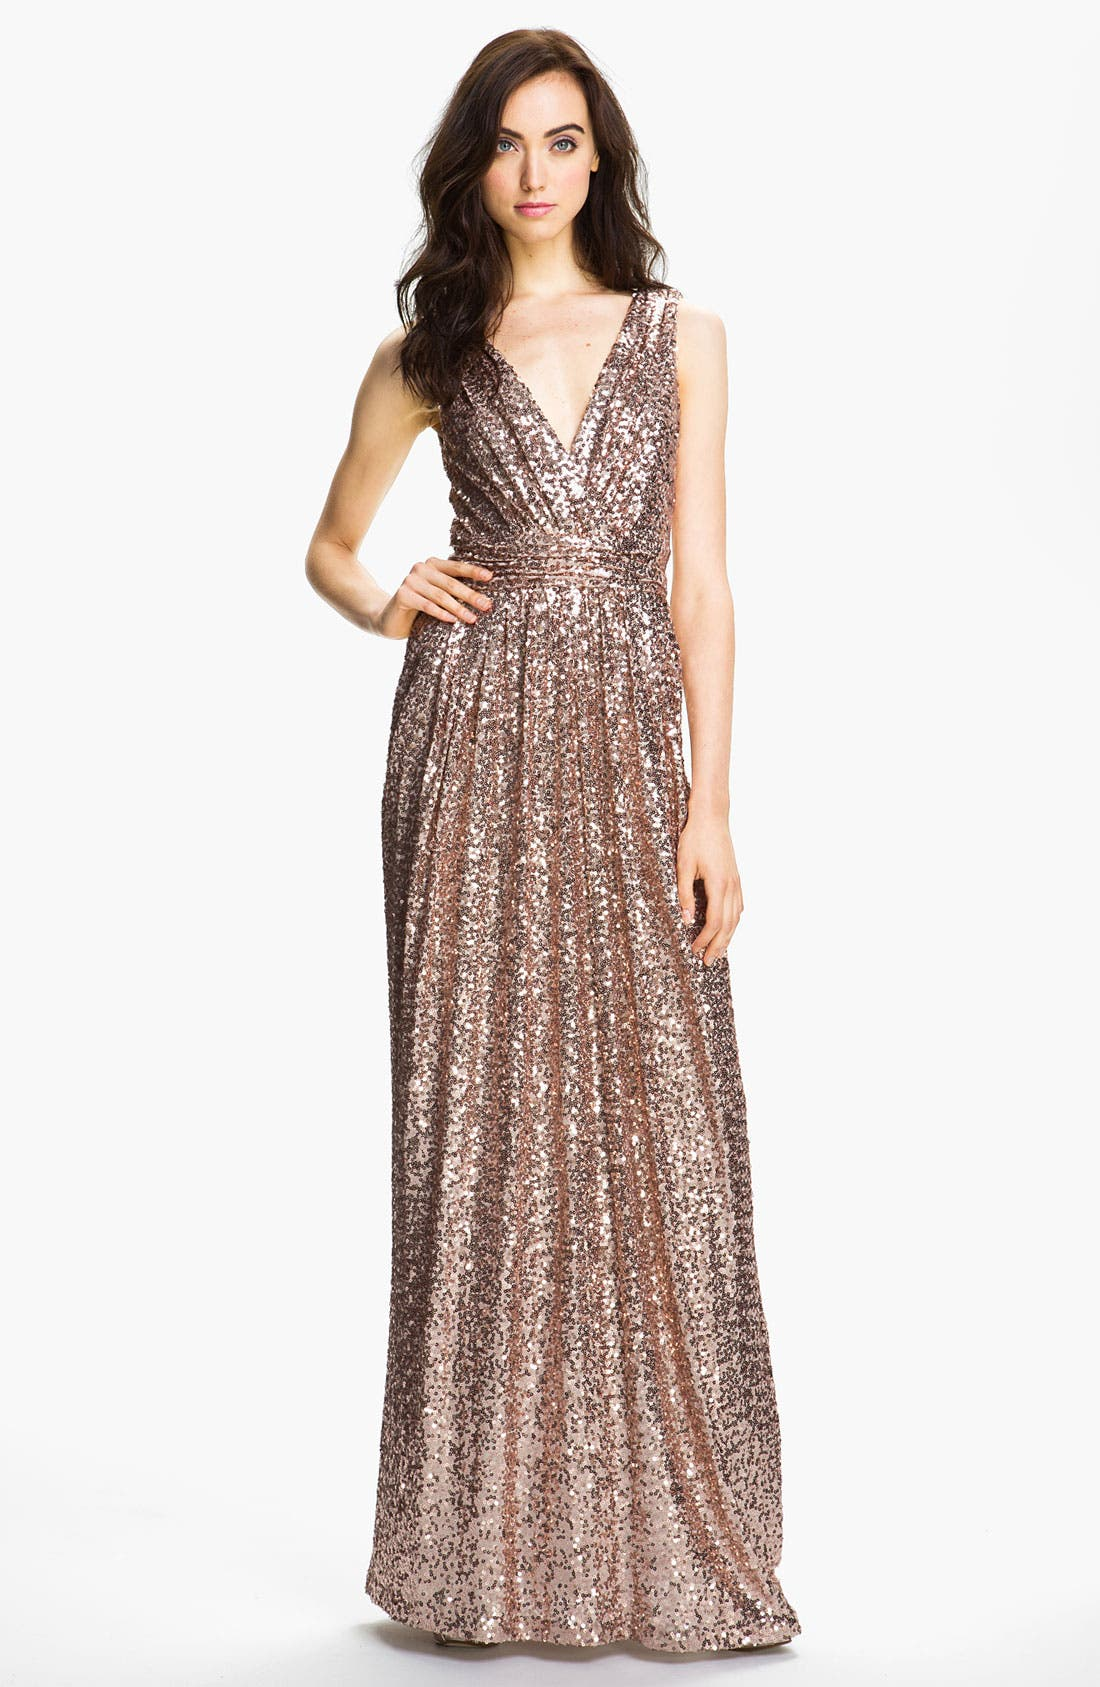 Alternate Image 1 Selected - Badgley Mischka Double V-Neck Sequin Gown